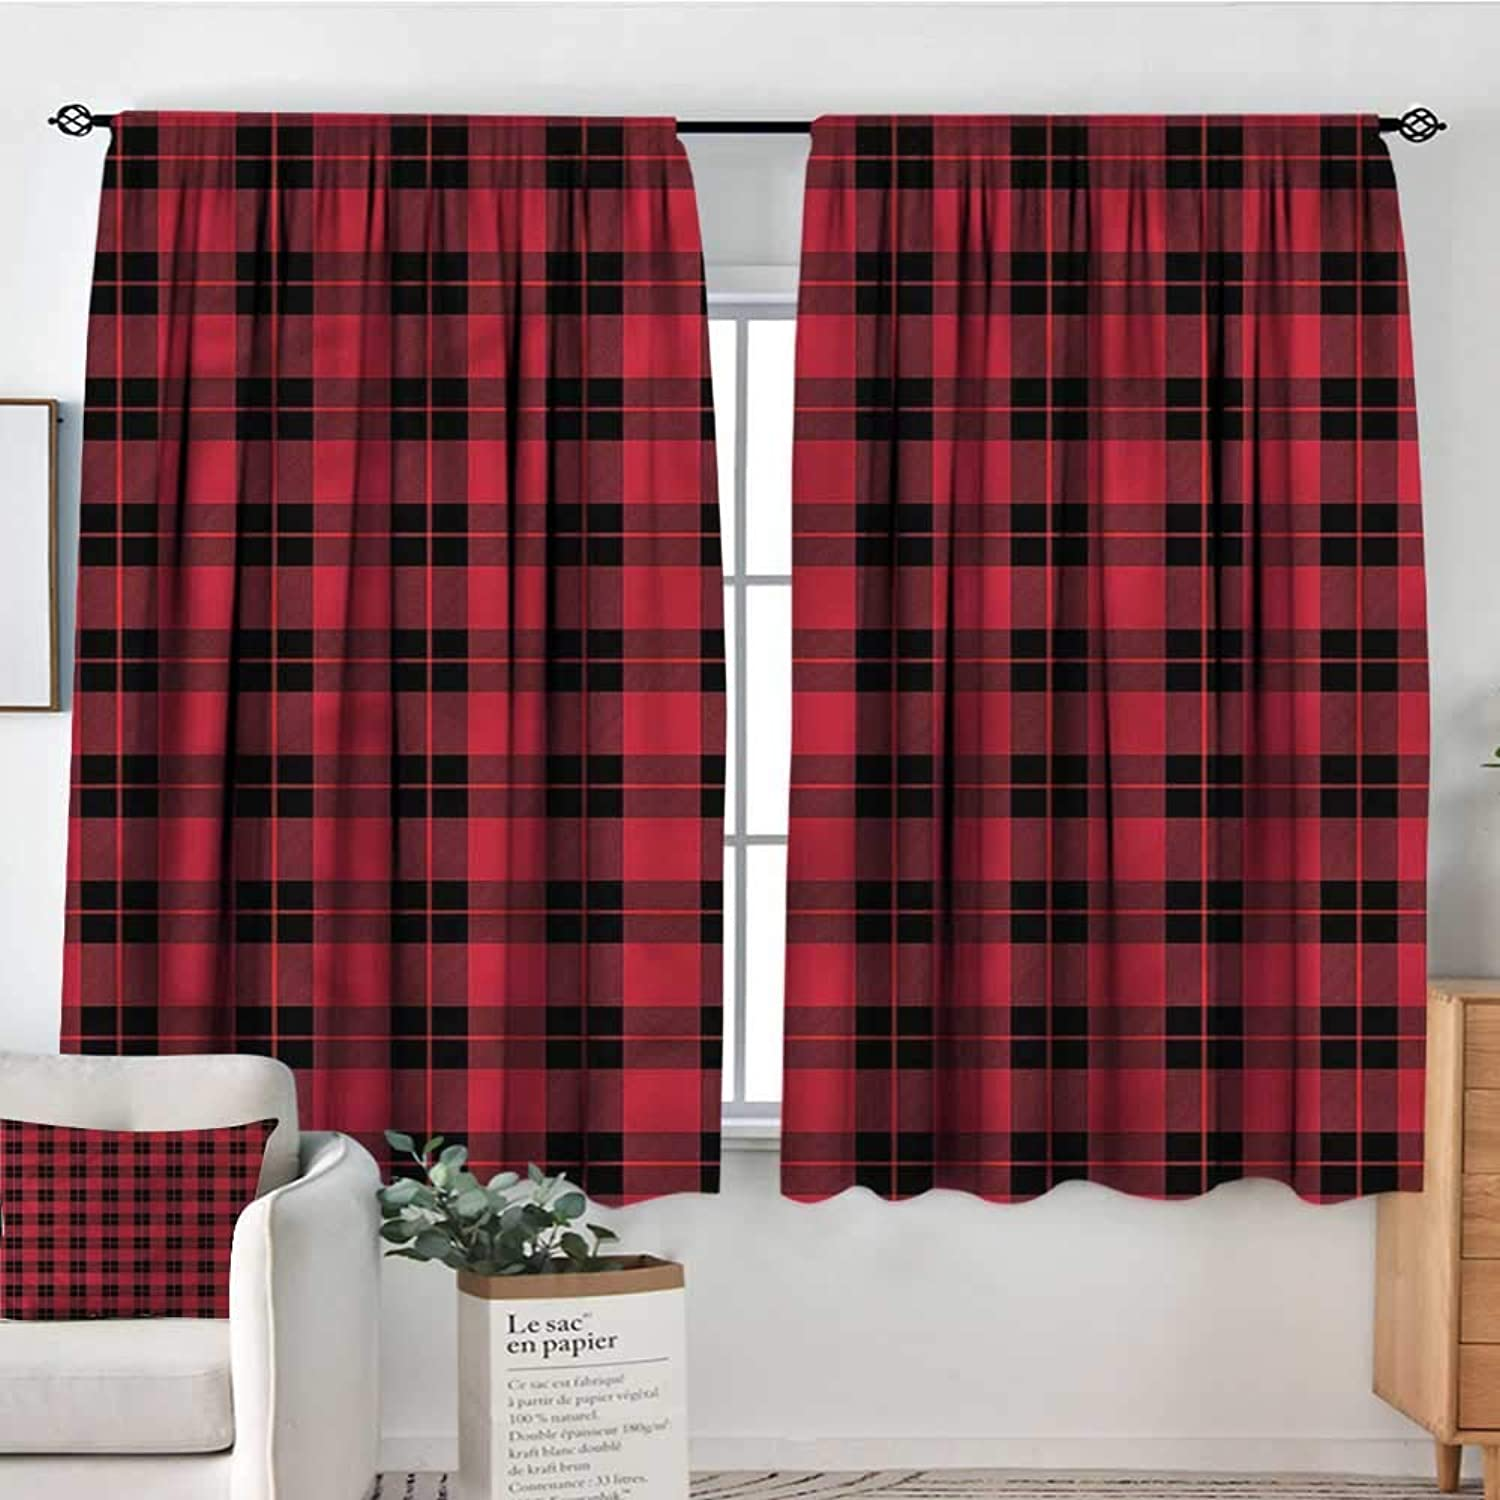 PriceTextile Plaid,Rod Curtains Geometrical Scottish Ornament 42 X63  Backout Curtains for Kids Iving Room